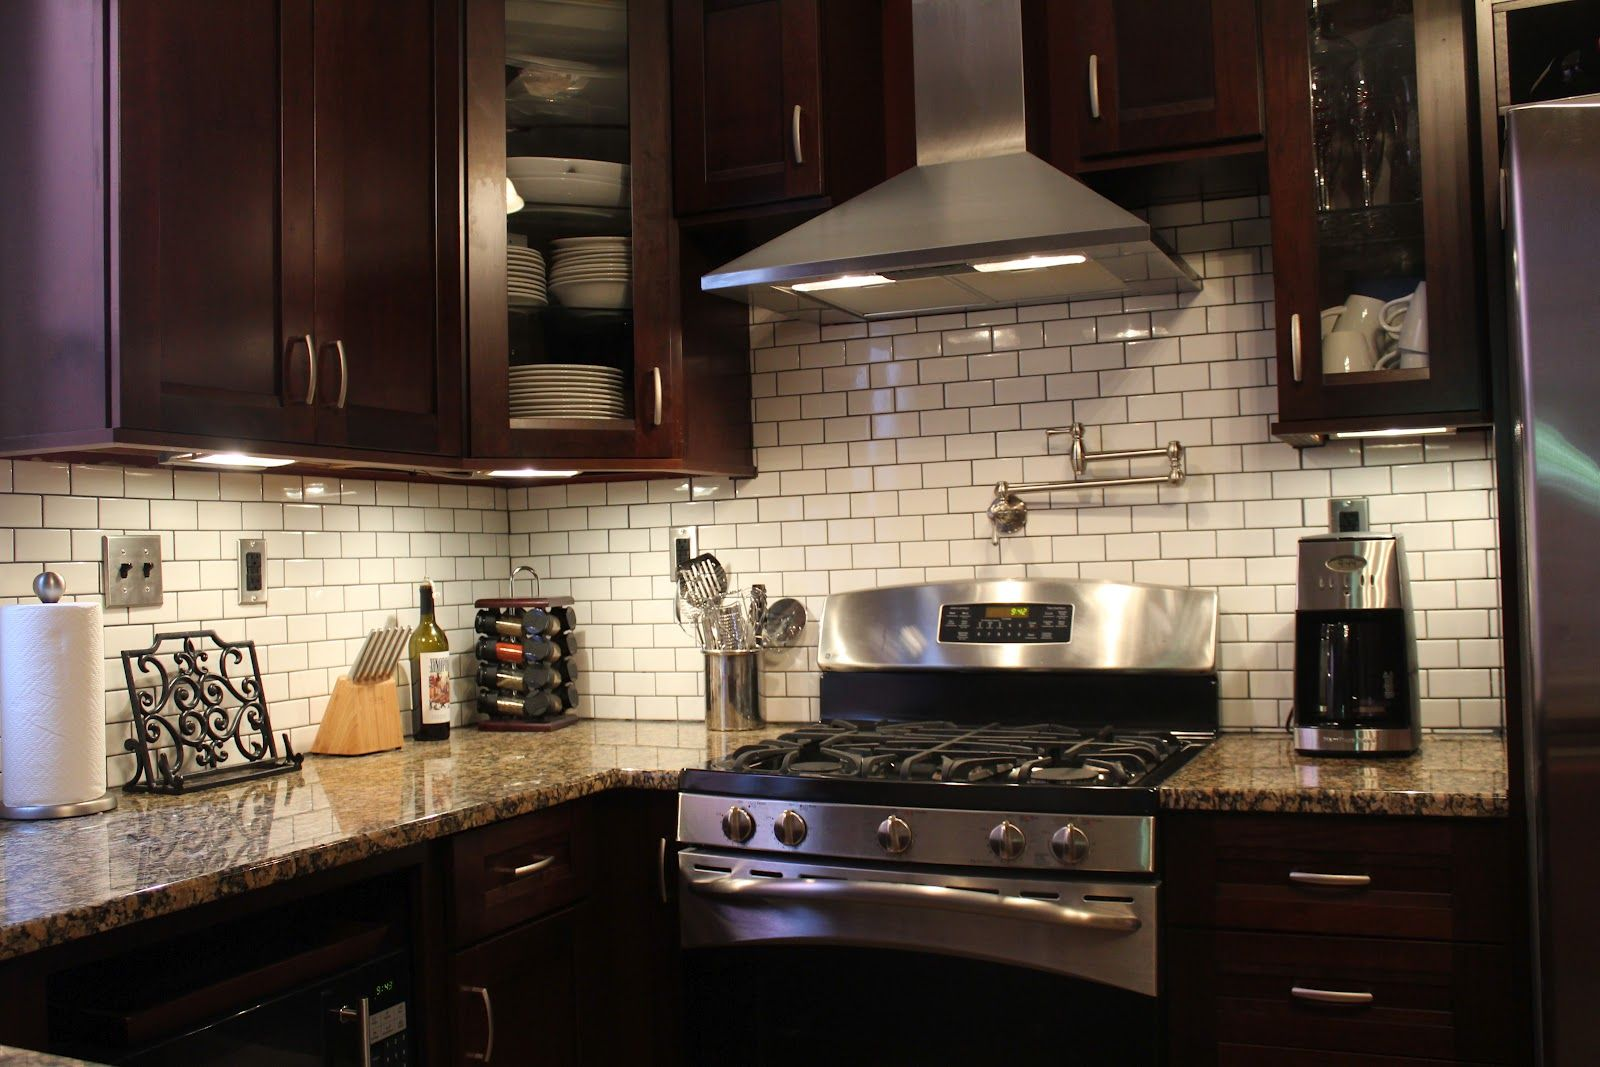 Darker Grout Trendy Kitchen Backsplash Backsplash With Dark